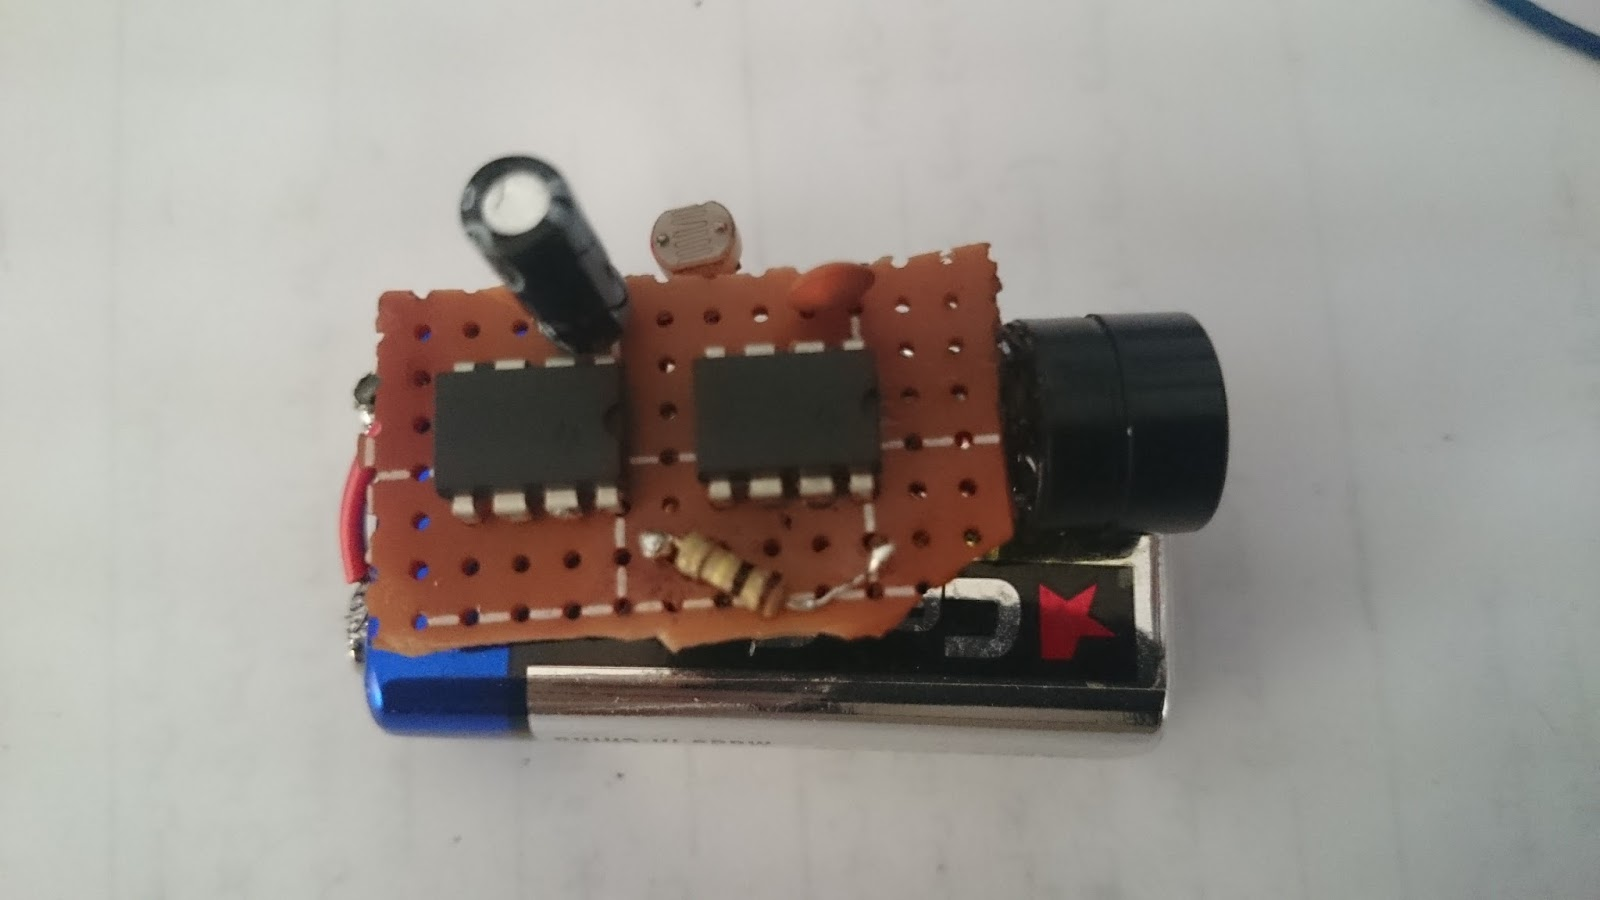 Fridge Door Alarm Circuit With Delay Time Simple Projects 555 Timer Open